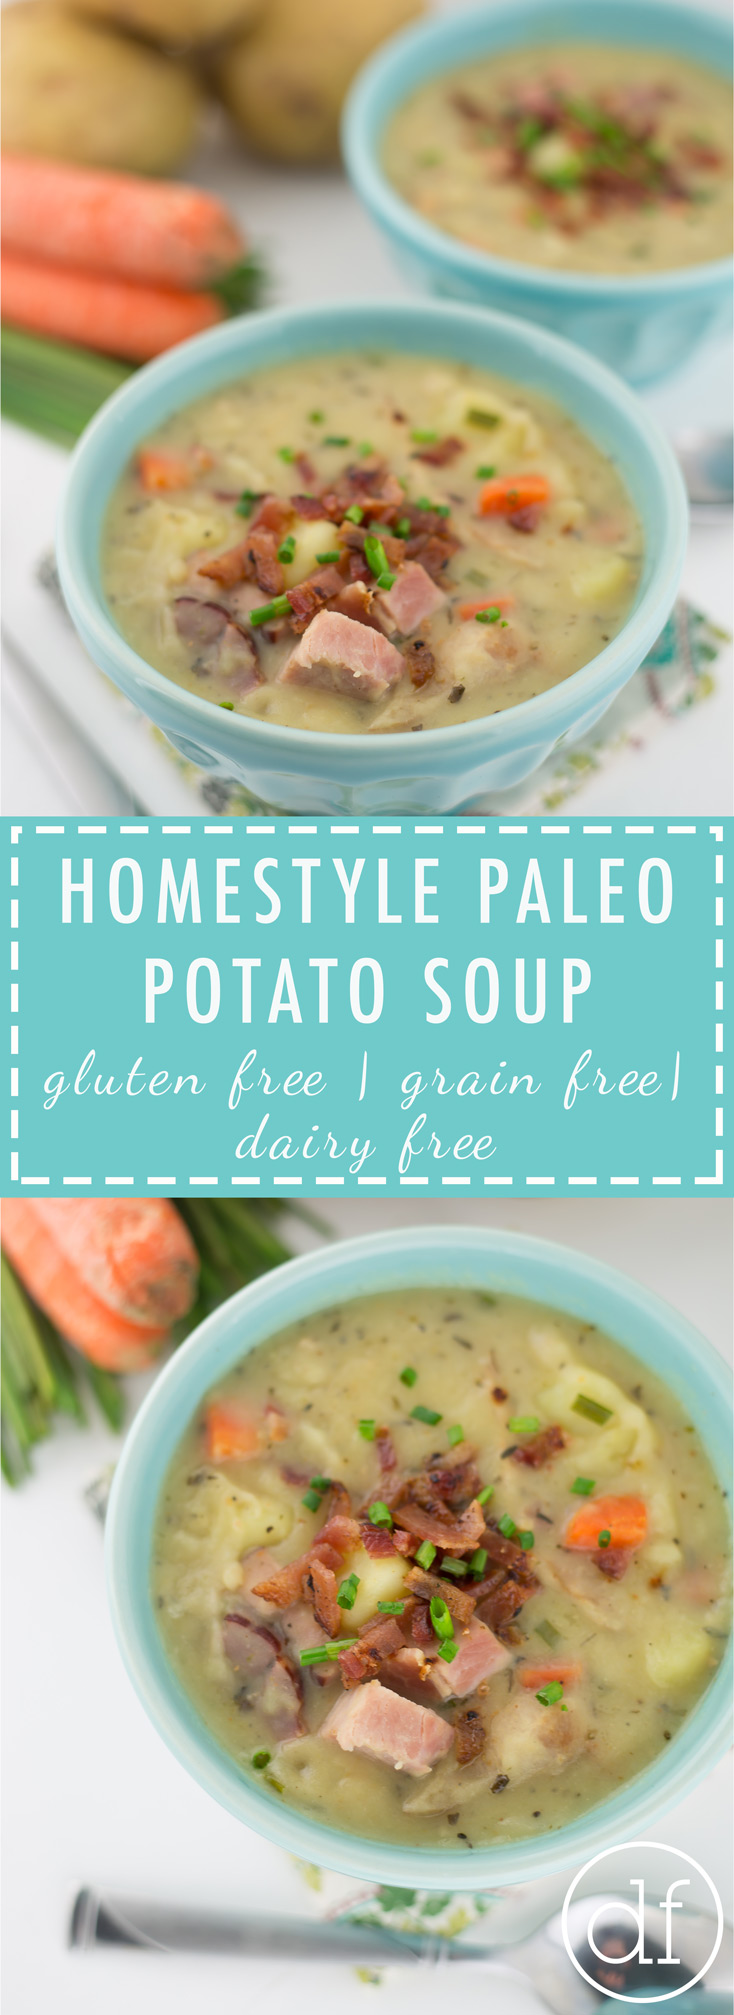 Homestyle Paleo Potato Soup, Paleo Soup, Healthy Potato Soup, 21 Day Sugar Detox, Whole30, Gluten Free, Grain Free, Dairy Free,